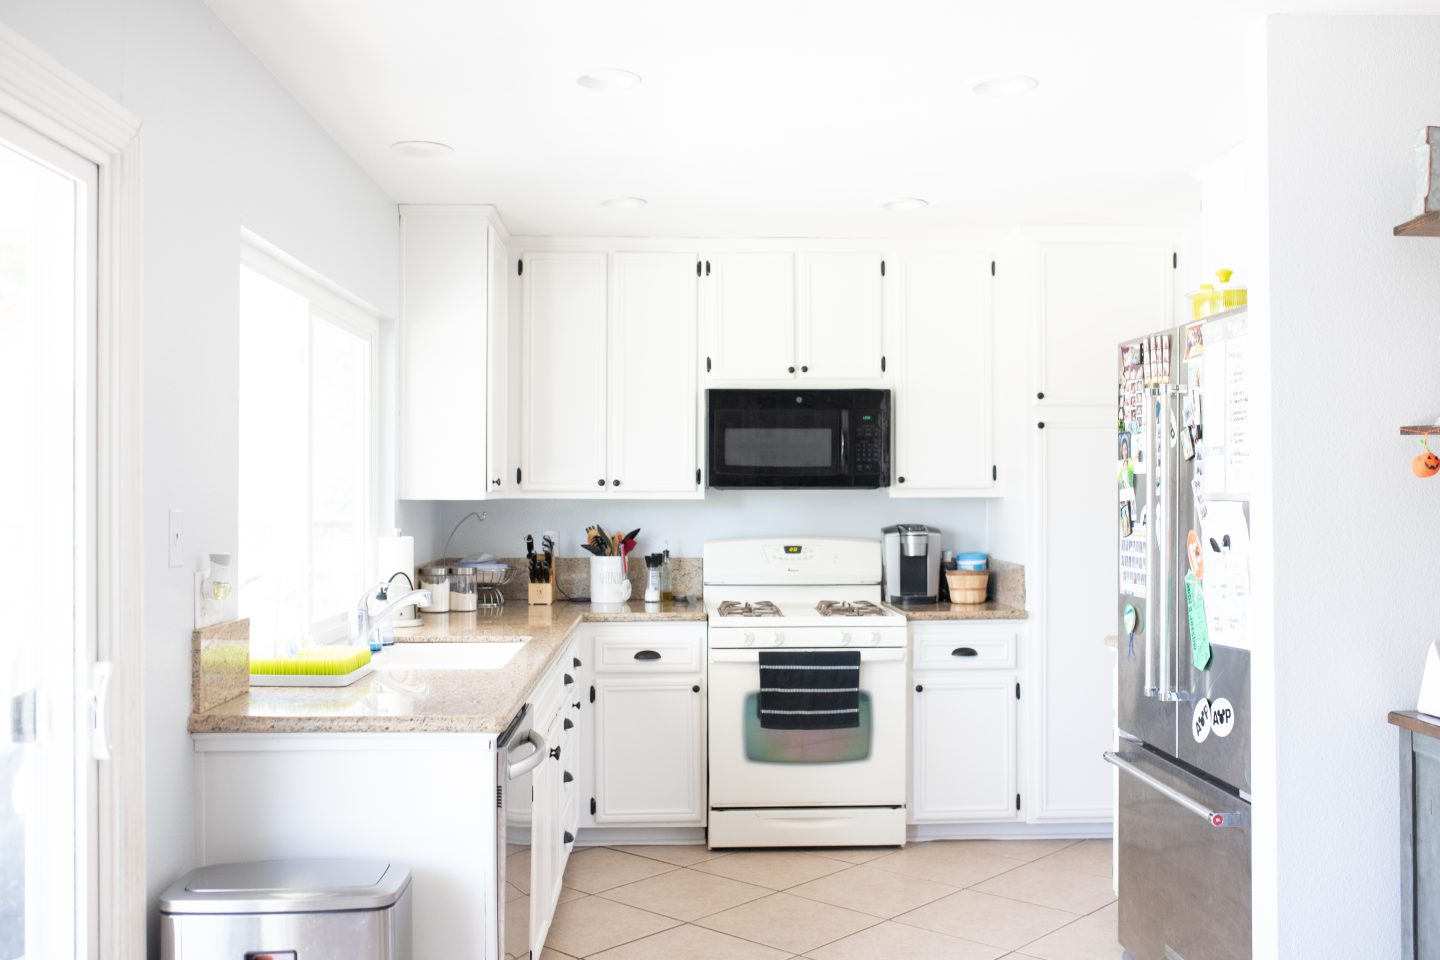 In only 2 days our kitchen cabinets were painted and updated! Sharing how to paint kitchen cabinets in only two days and under $500 ! Painting kitchen cabinets is a great way to give your kitchen an update! #diy #diyblog #tutorial #kitchencabinets #kitchens #kitchen #farmhousekitchen #kitchenupdate #updatekitchen #diykitchen